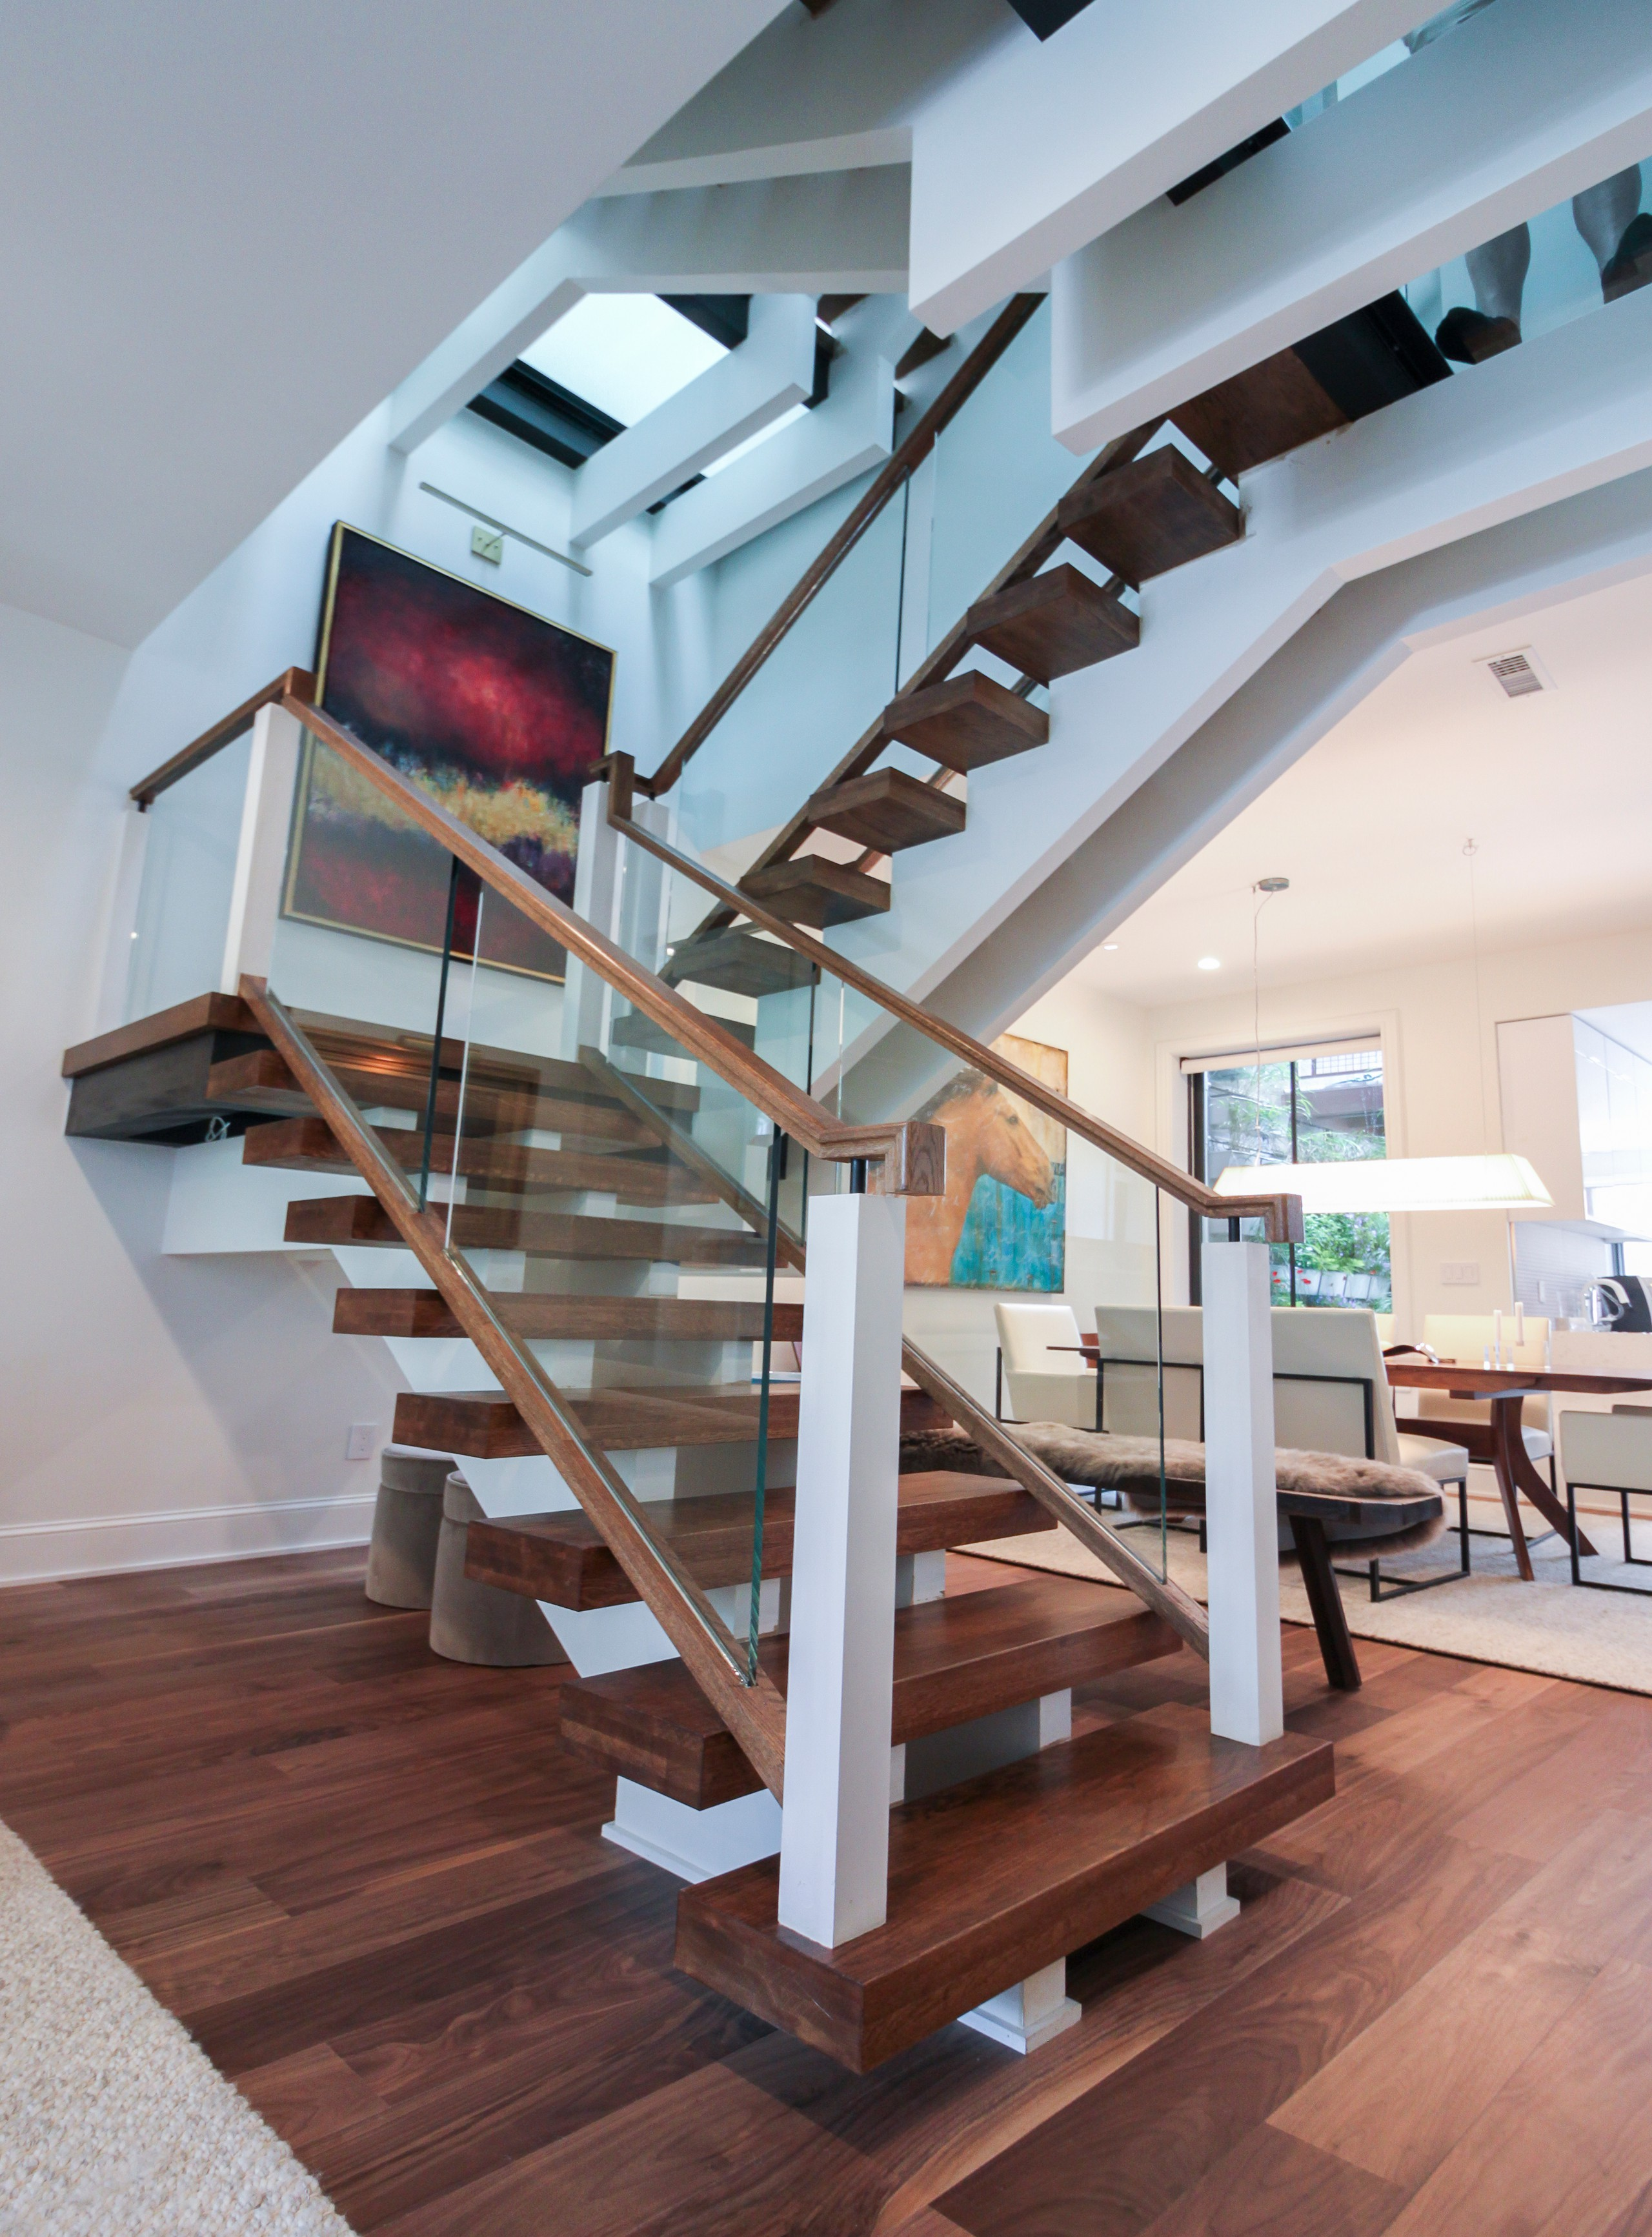 68_Innovative and Ultra-modern Stairs with Glass Landings, Washington DC 20009